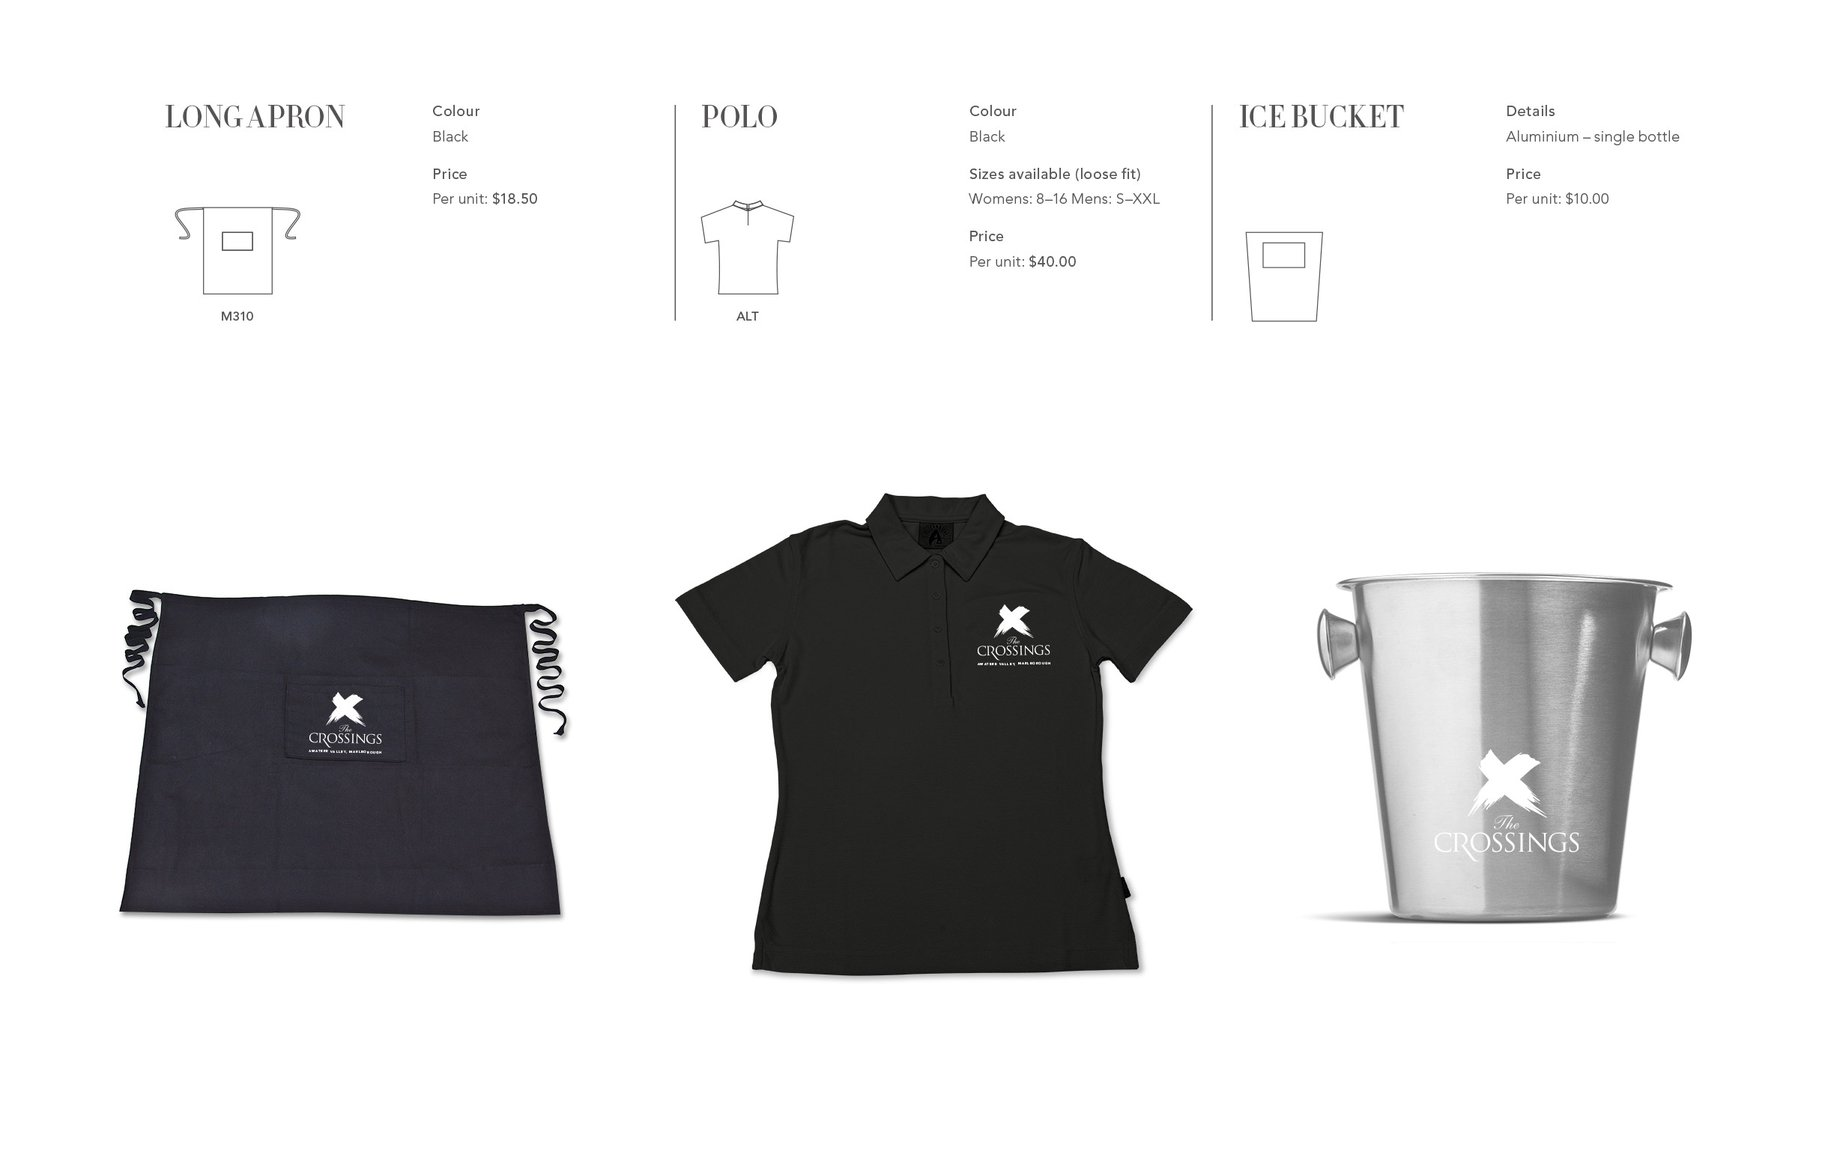 The Crossings uniform and collateral design